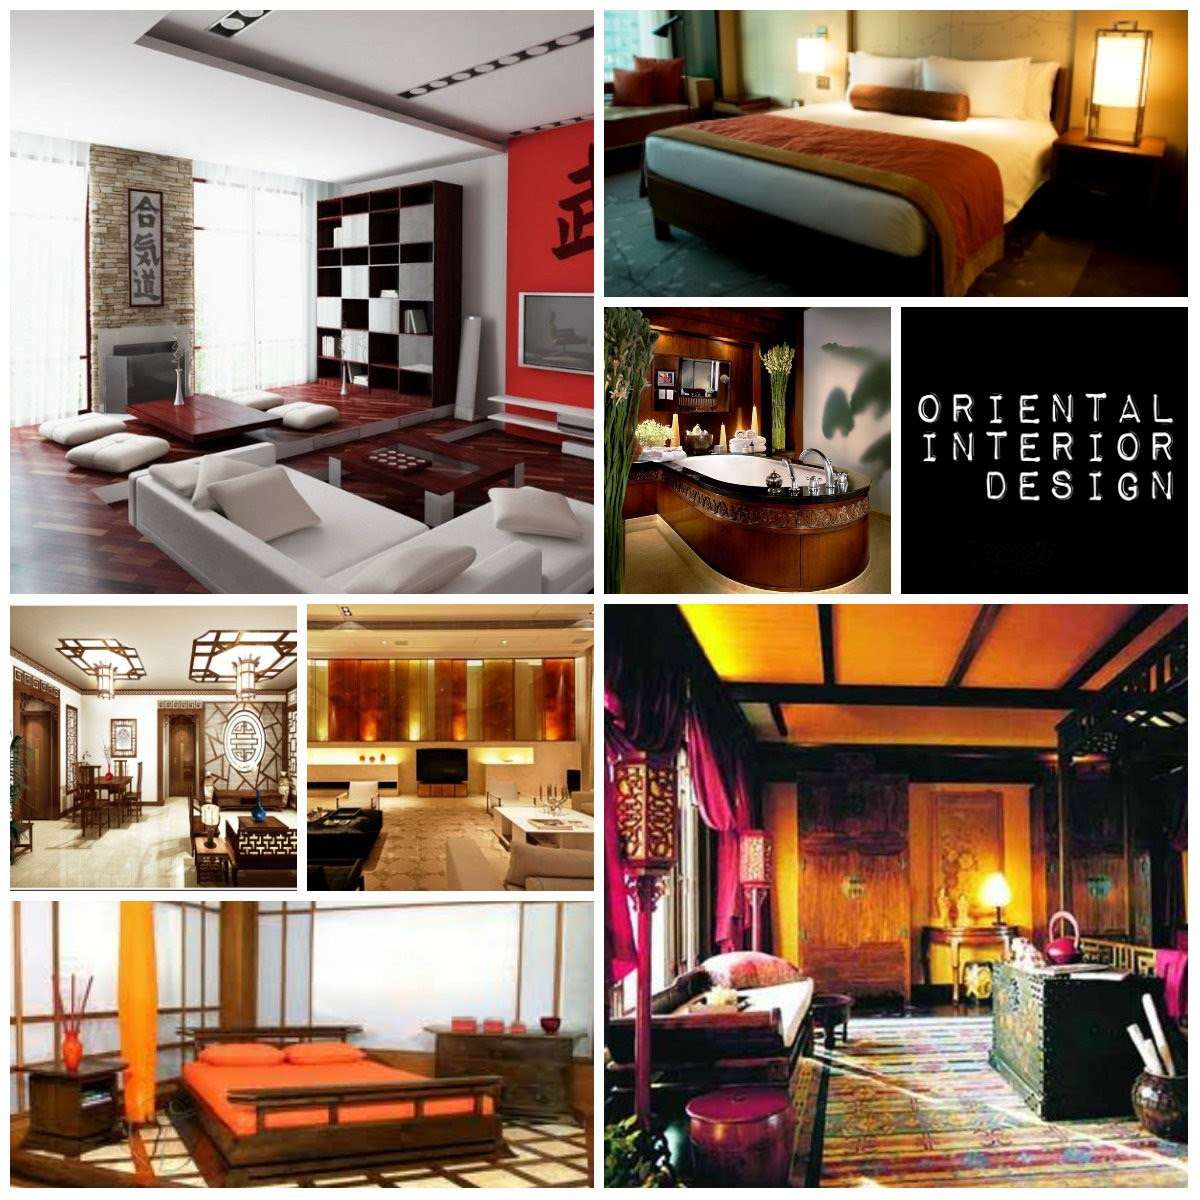 Different interior design styles research the world for Types of interior design